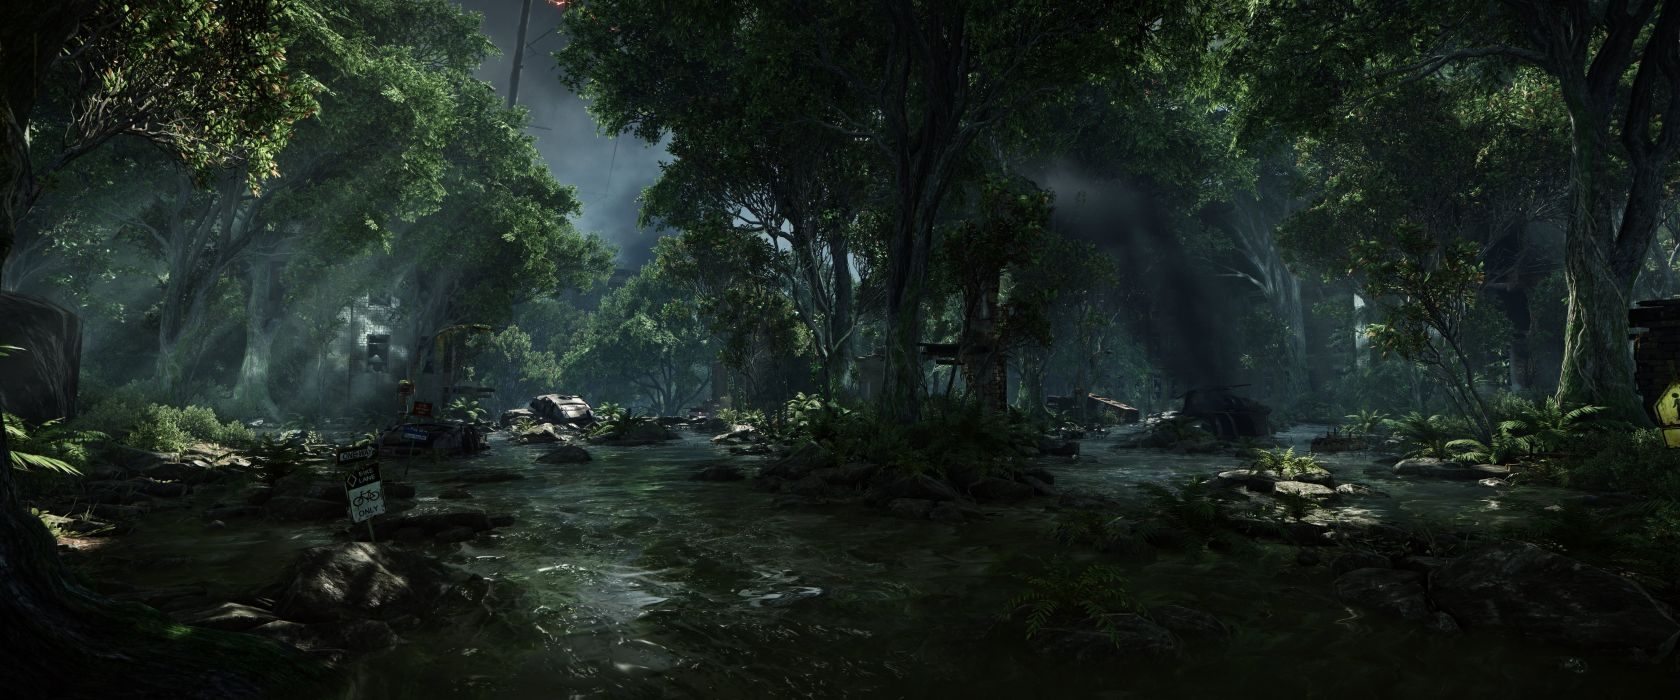 CRYSIS sci-fi fps shooter action fighing futuristic warrior military apocalyptic wallpaper